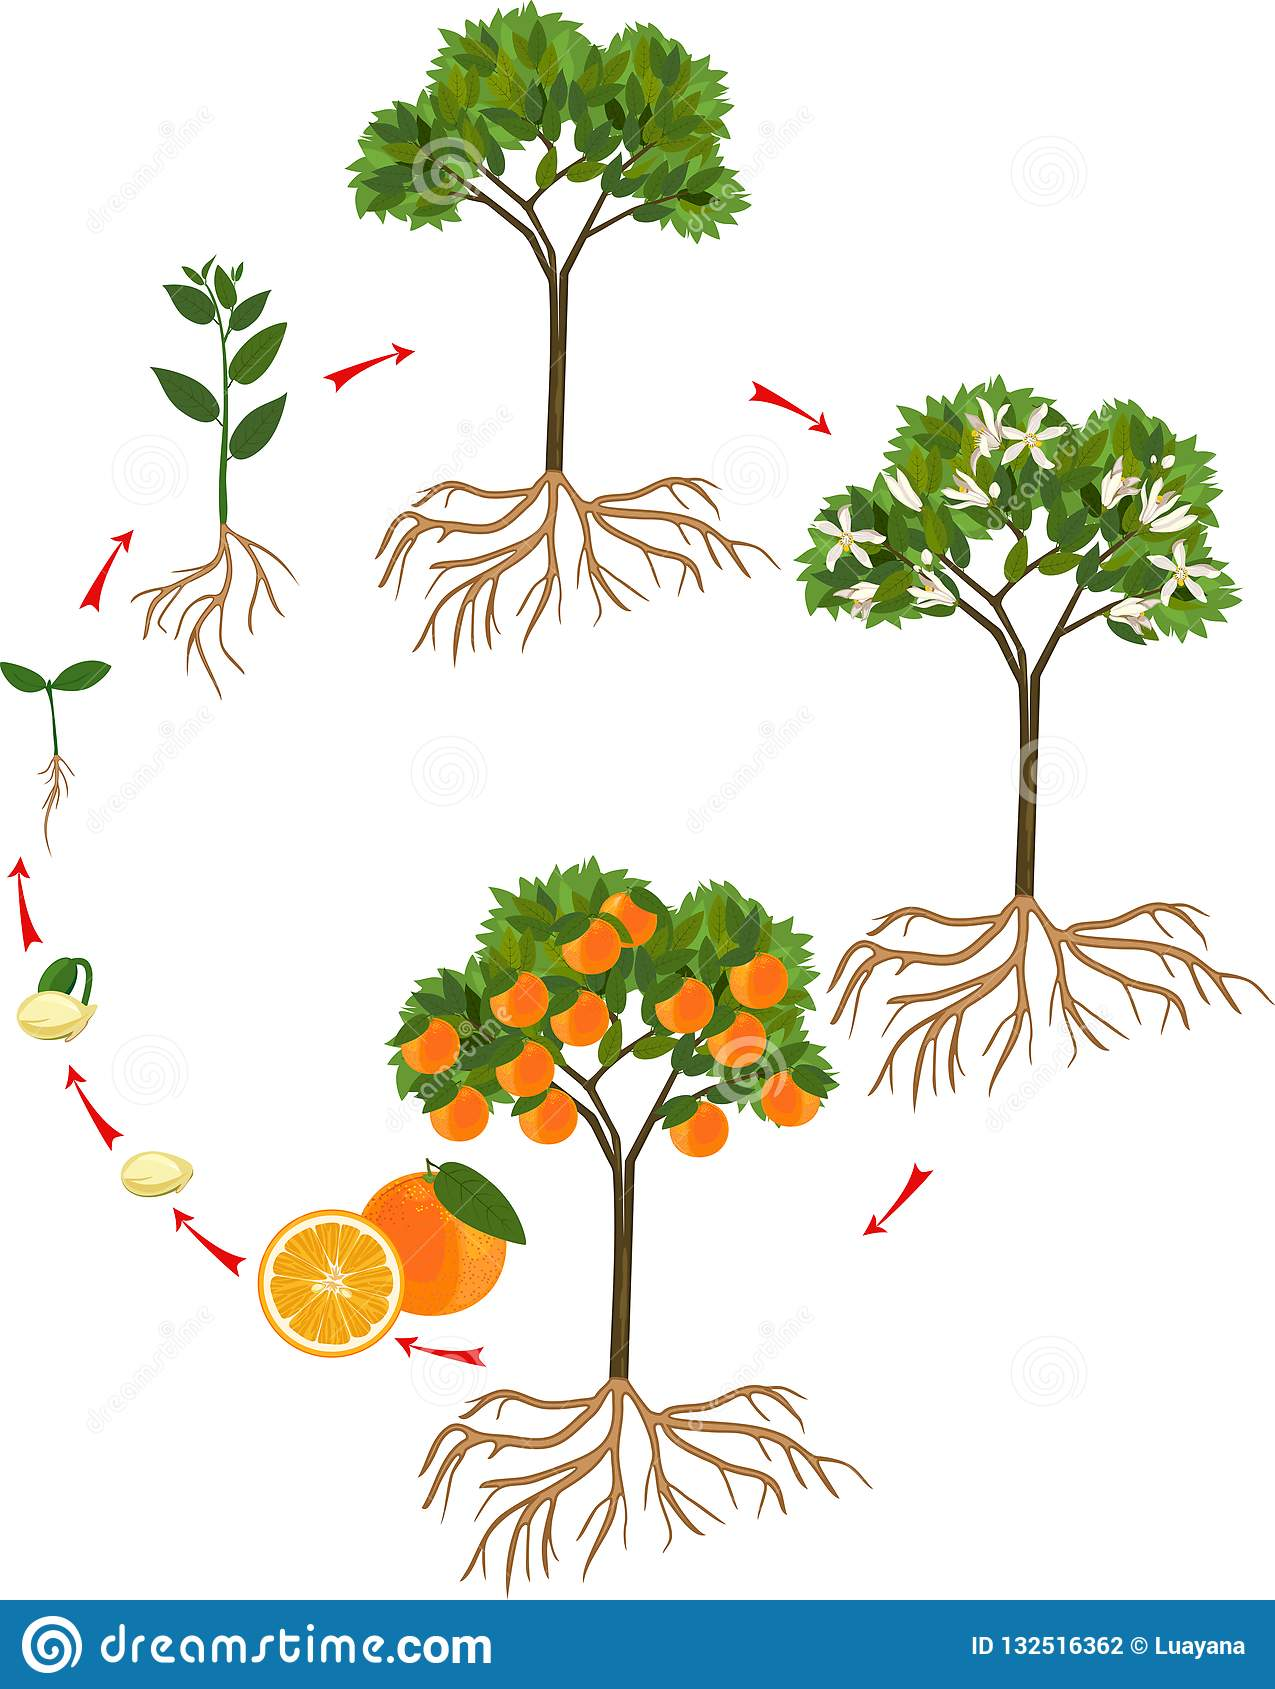 Cycle De Vie D'un Arbre : cycle, arbre, Cycle, D'arbre, Orange, Illustration, Vecteur, Phases,, Jardin:, 132516362